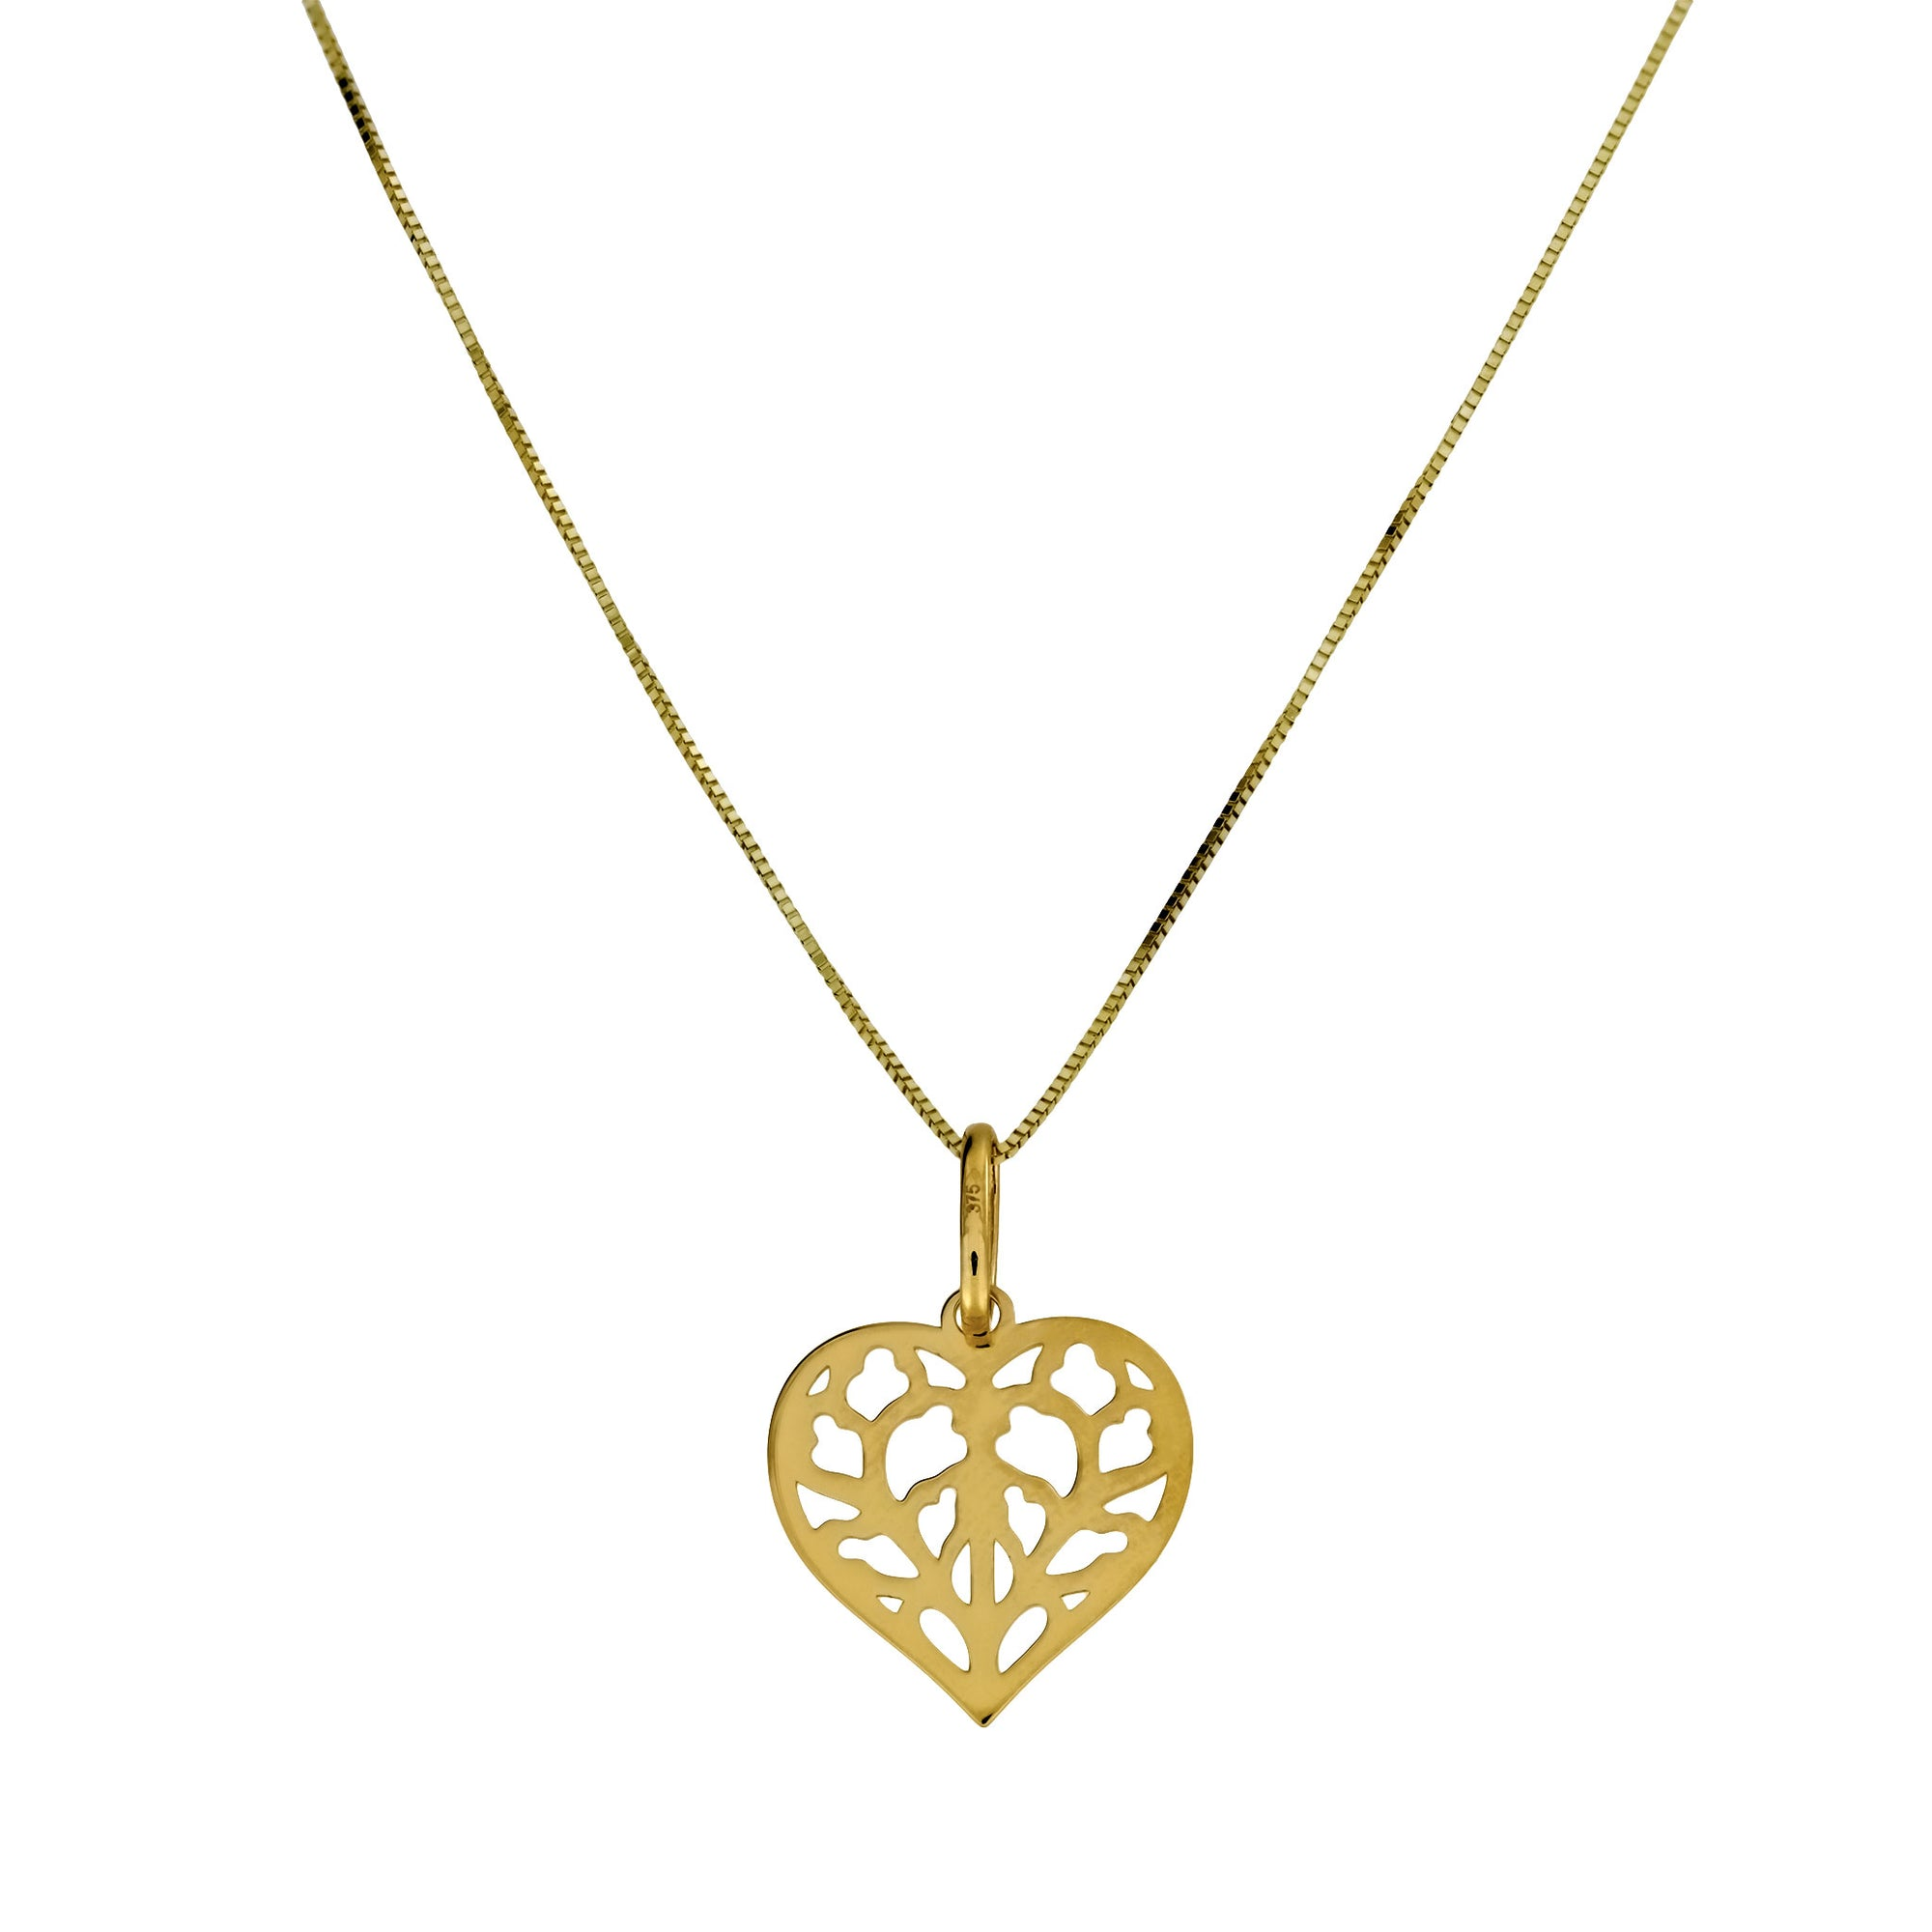 9ct Gold Heart of Yorkshire Pendant